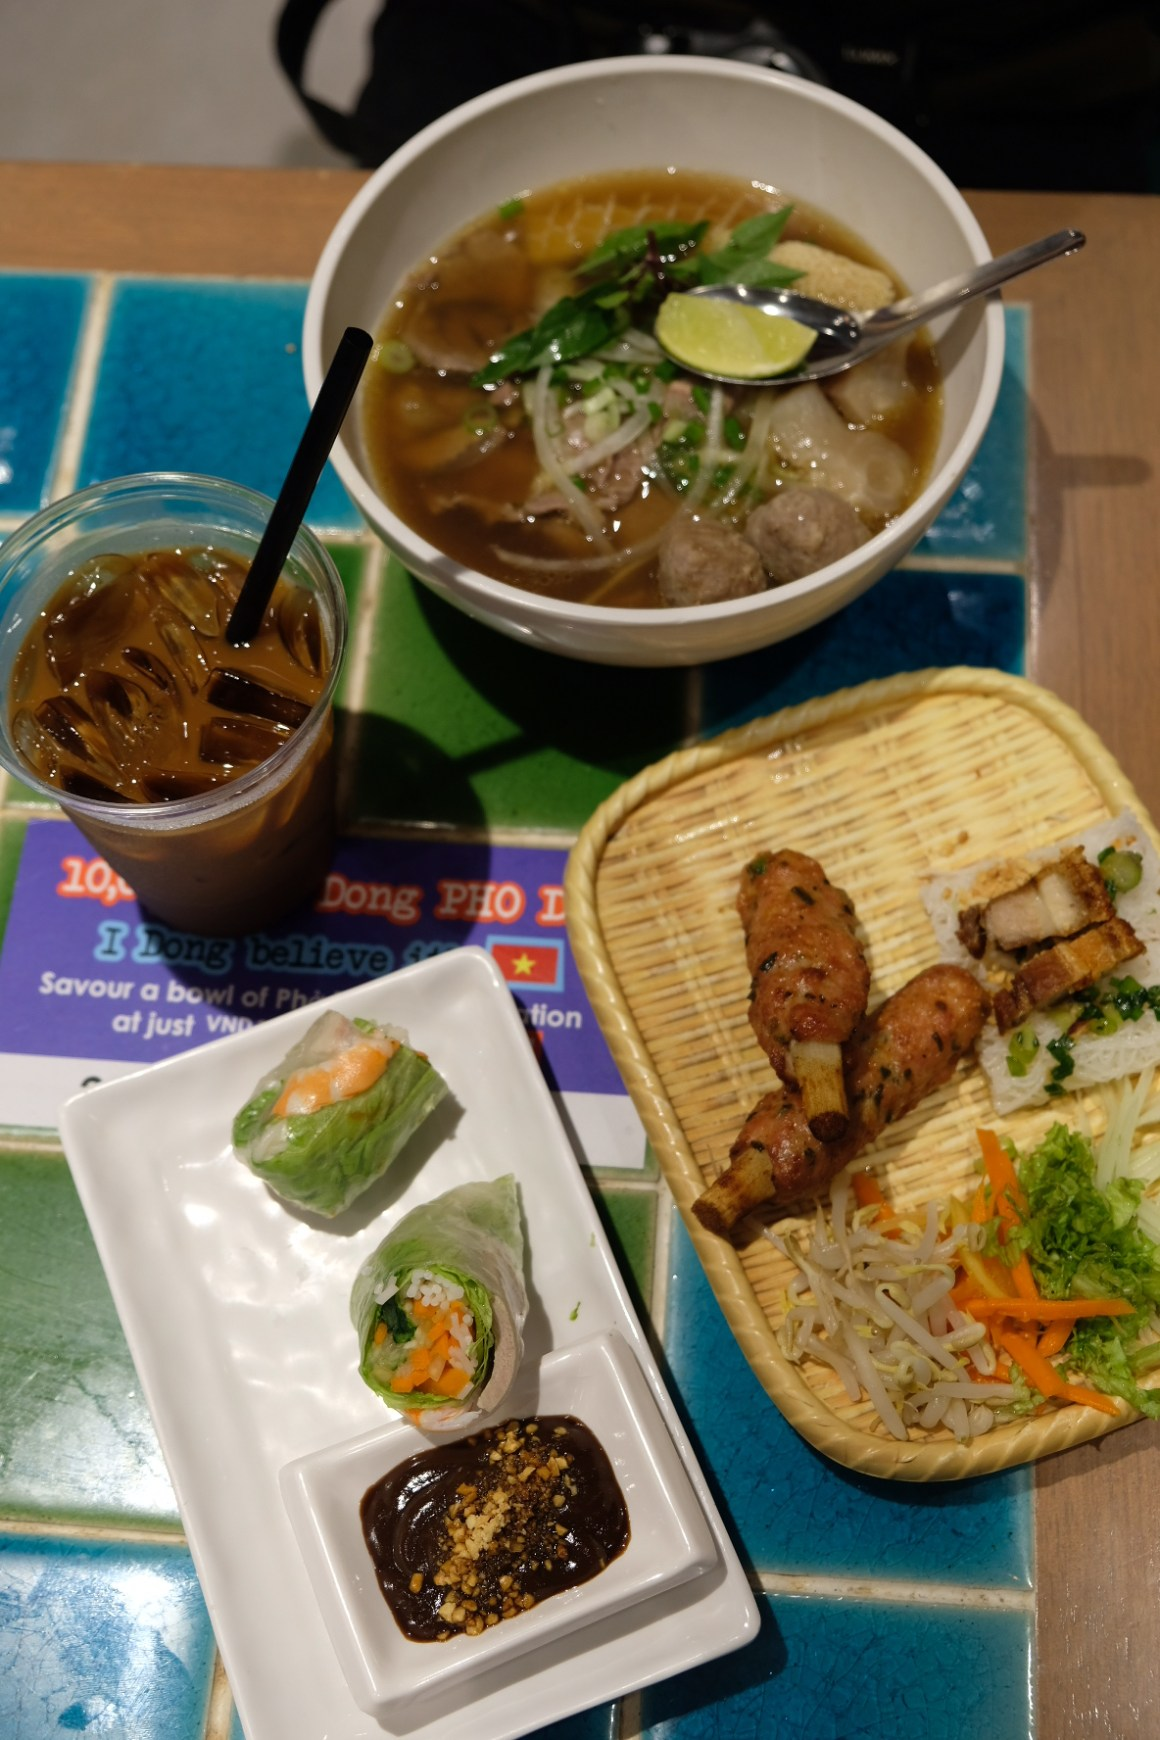 First-Ever Pho Day By Pho Street Going At SGD 0.60 per bowl - Meal at Pho Street